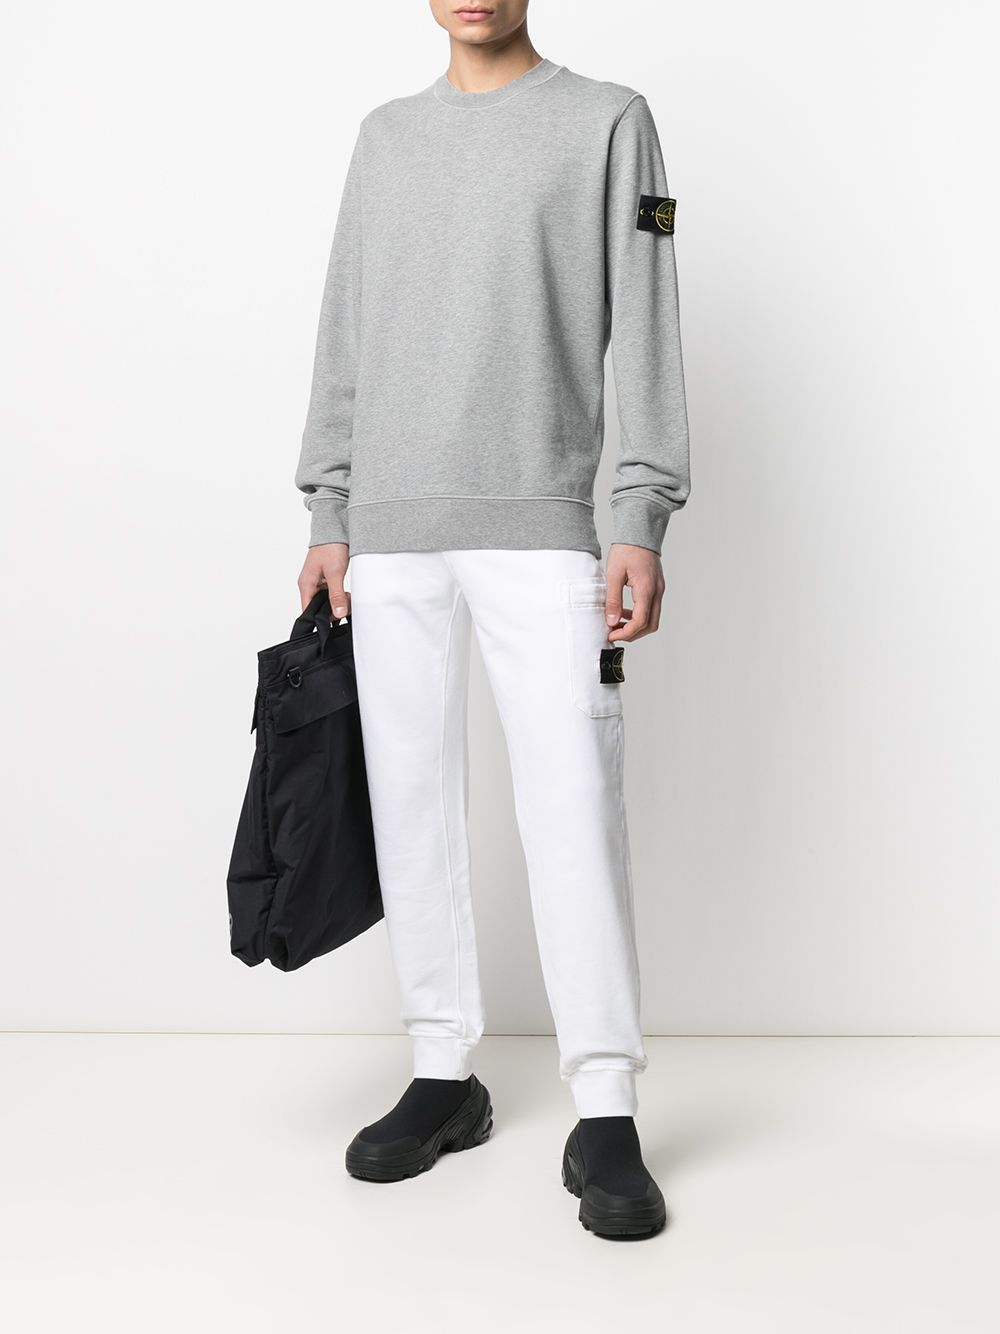 White cotton track pants featuring jersey knit STONE ISLAND |  | 741564551V0001